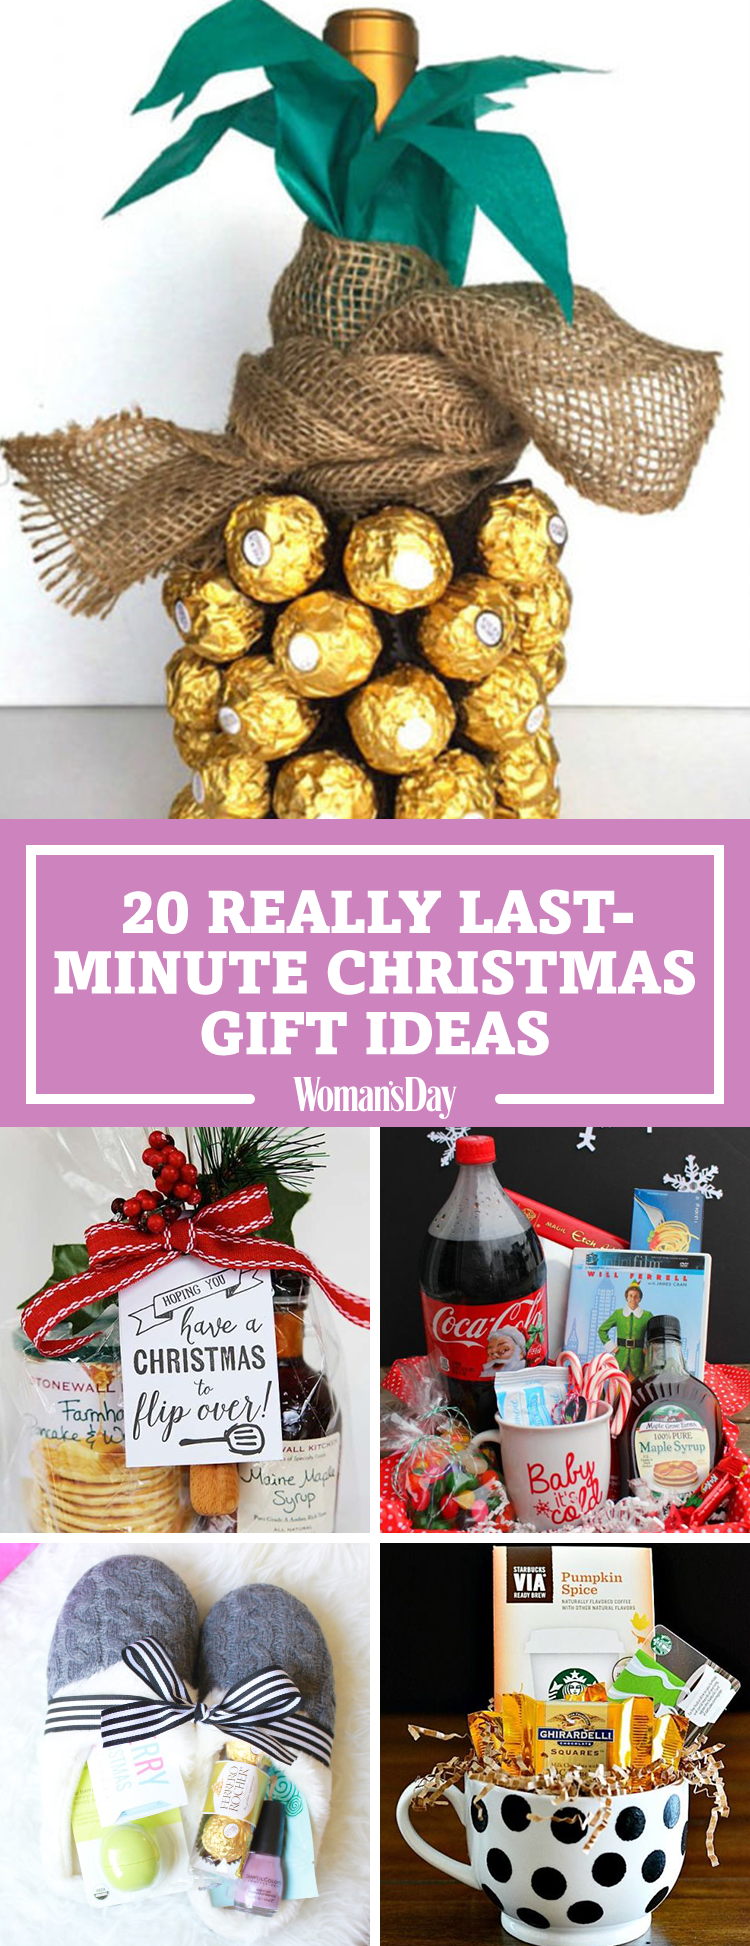 Christmas Present Ideas.Last Minute Christmas Gifts Retailers With Last Minute